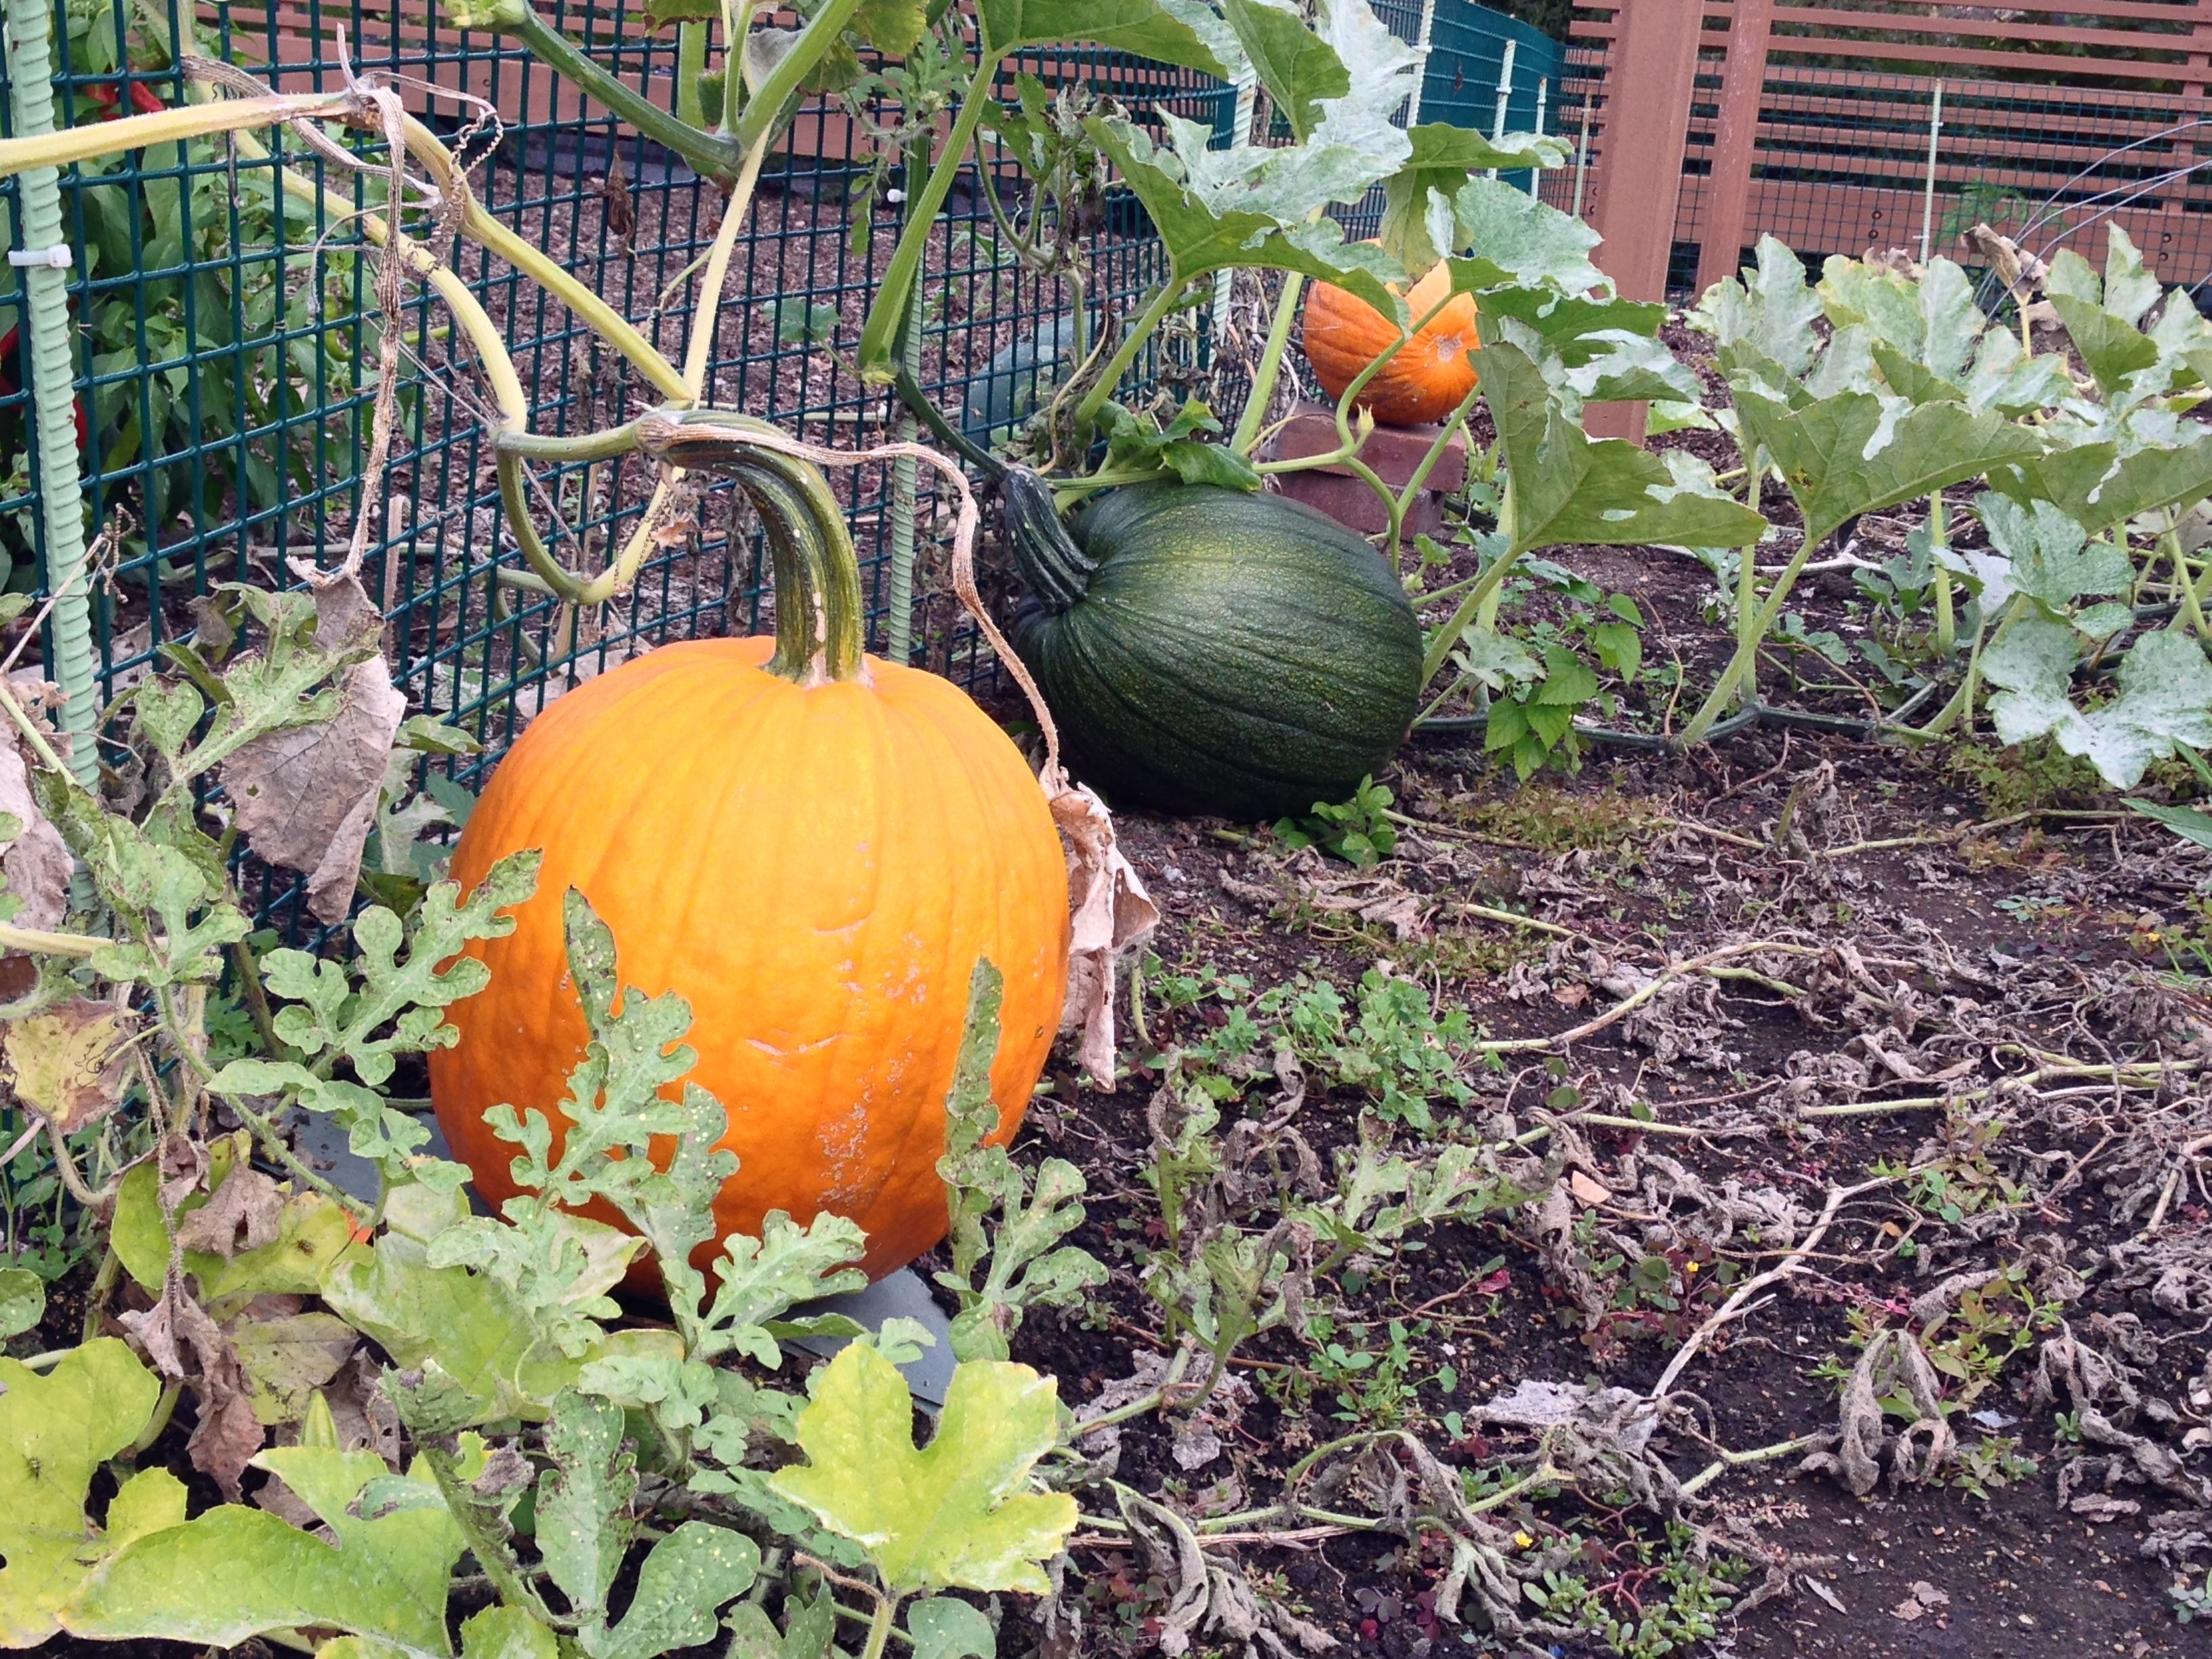 harvest winter squash and pumpkins before frost for best storage